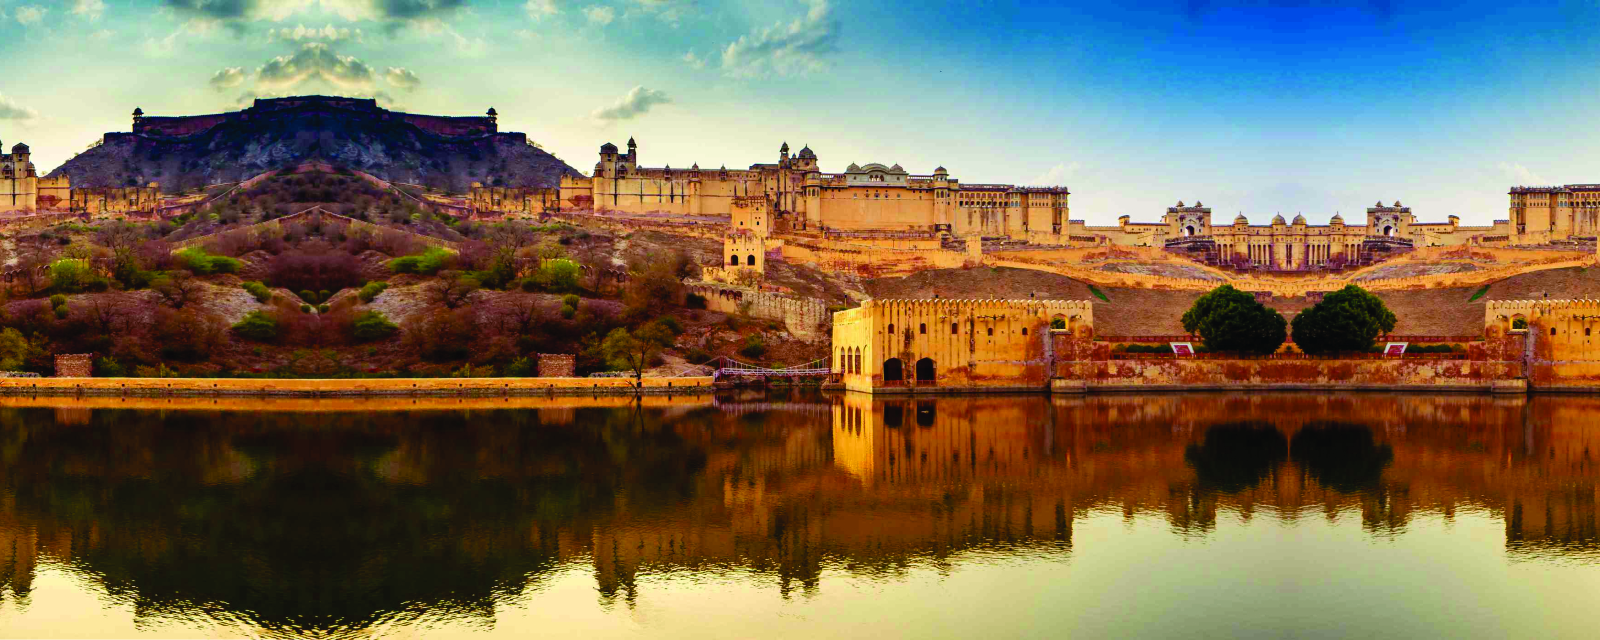 Rajasthan, Enjoy the Colors of Royalty